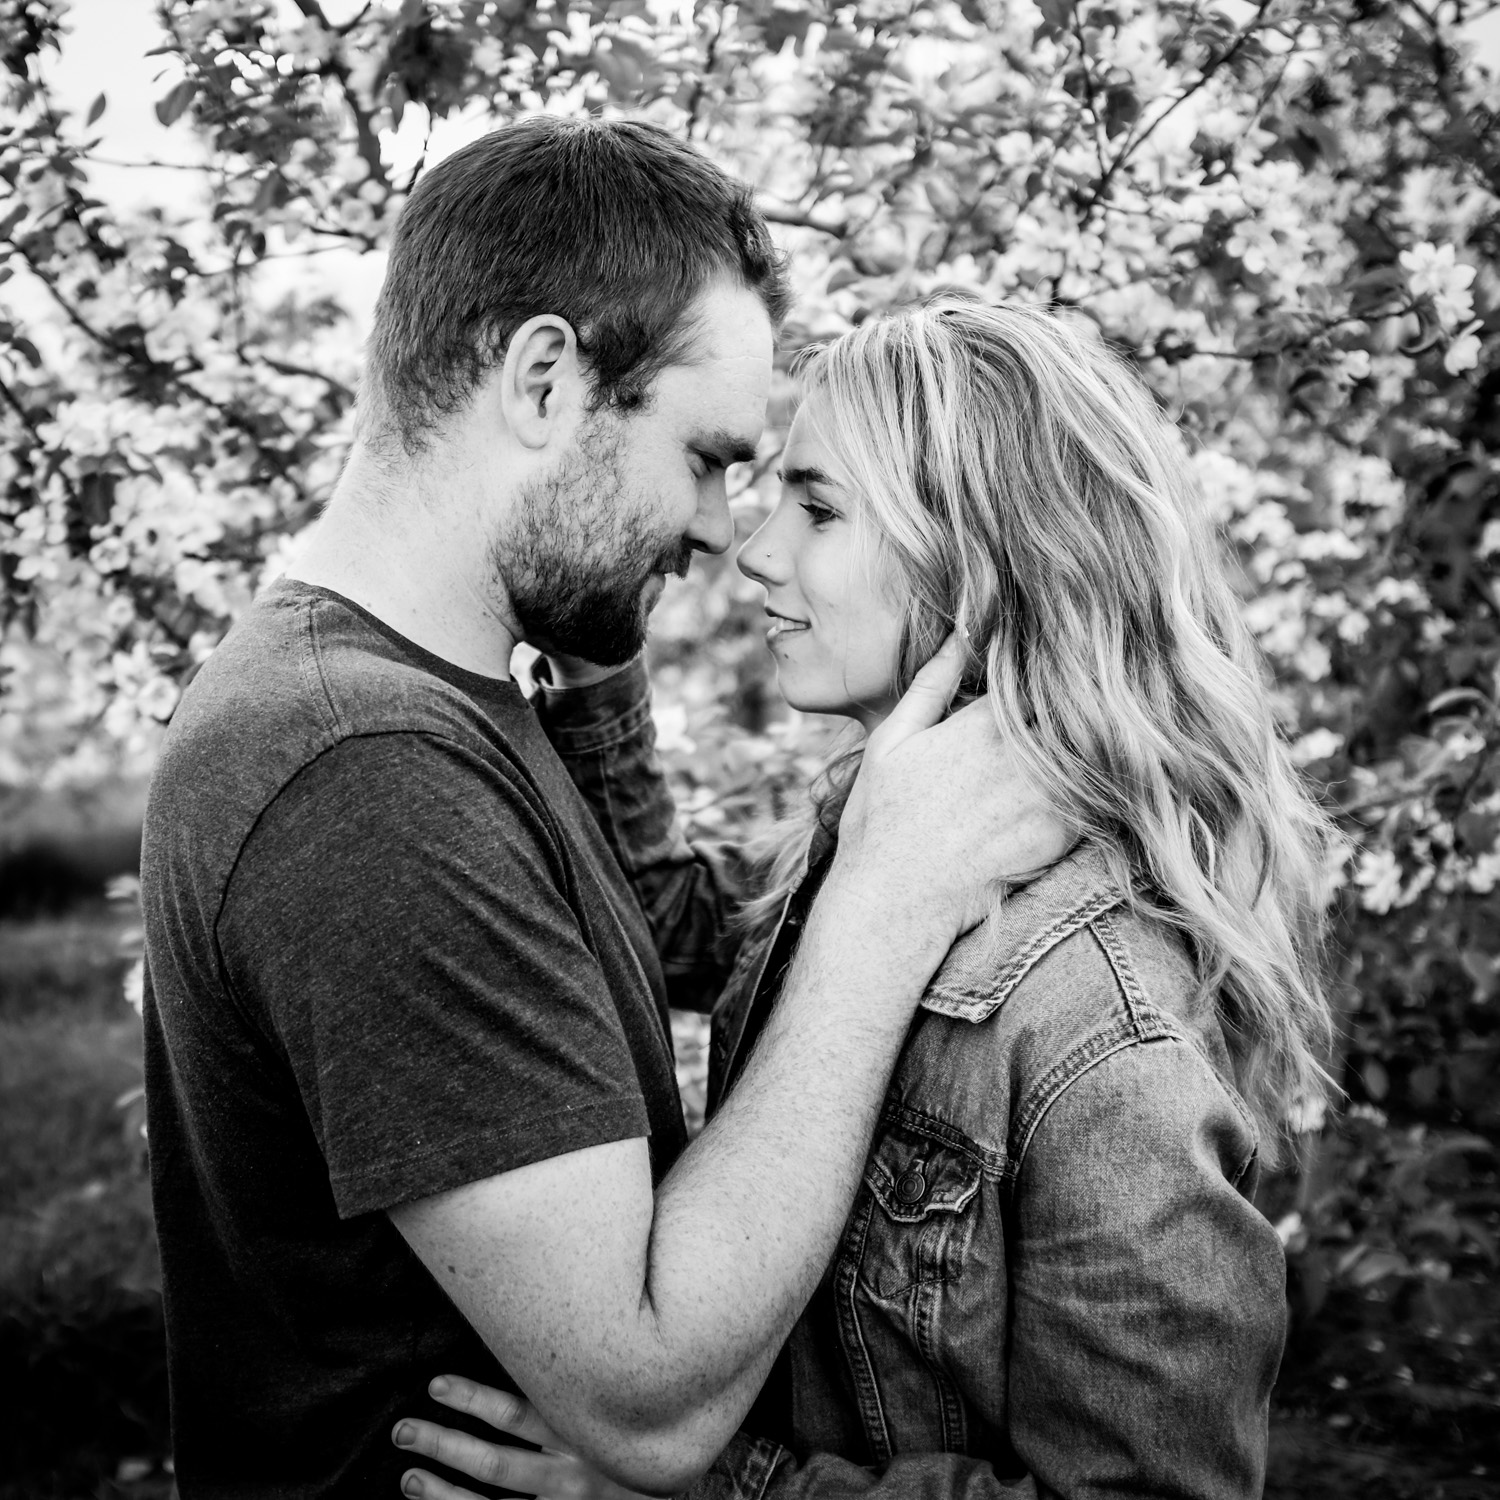 Romantic black and white photo of a couple fun ways to photograph couples that are